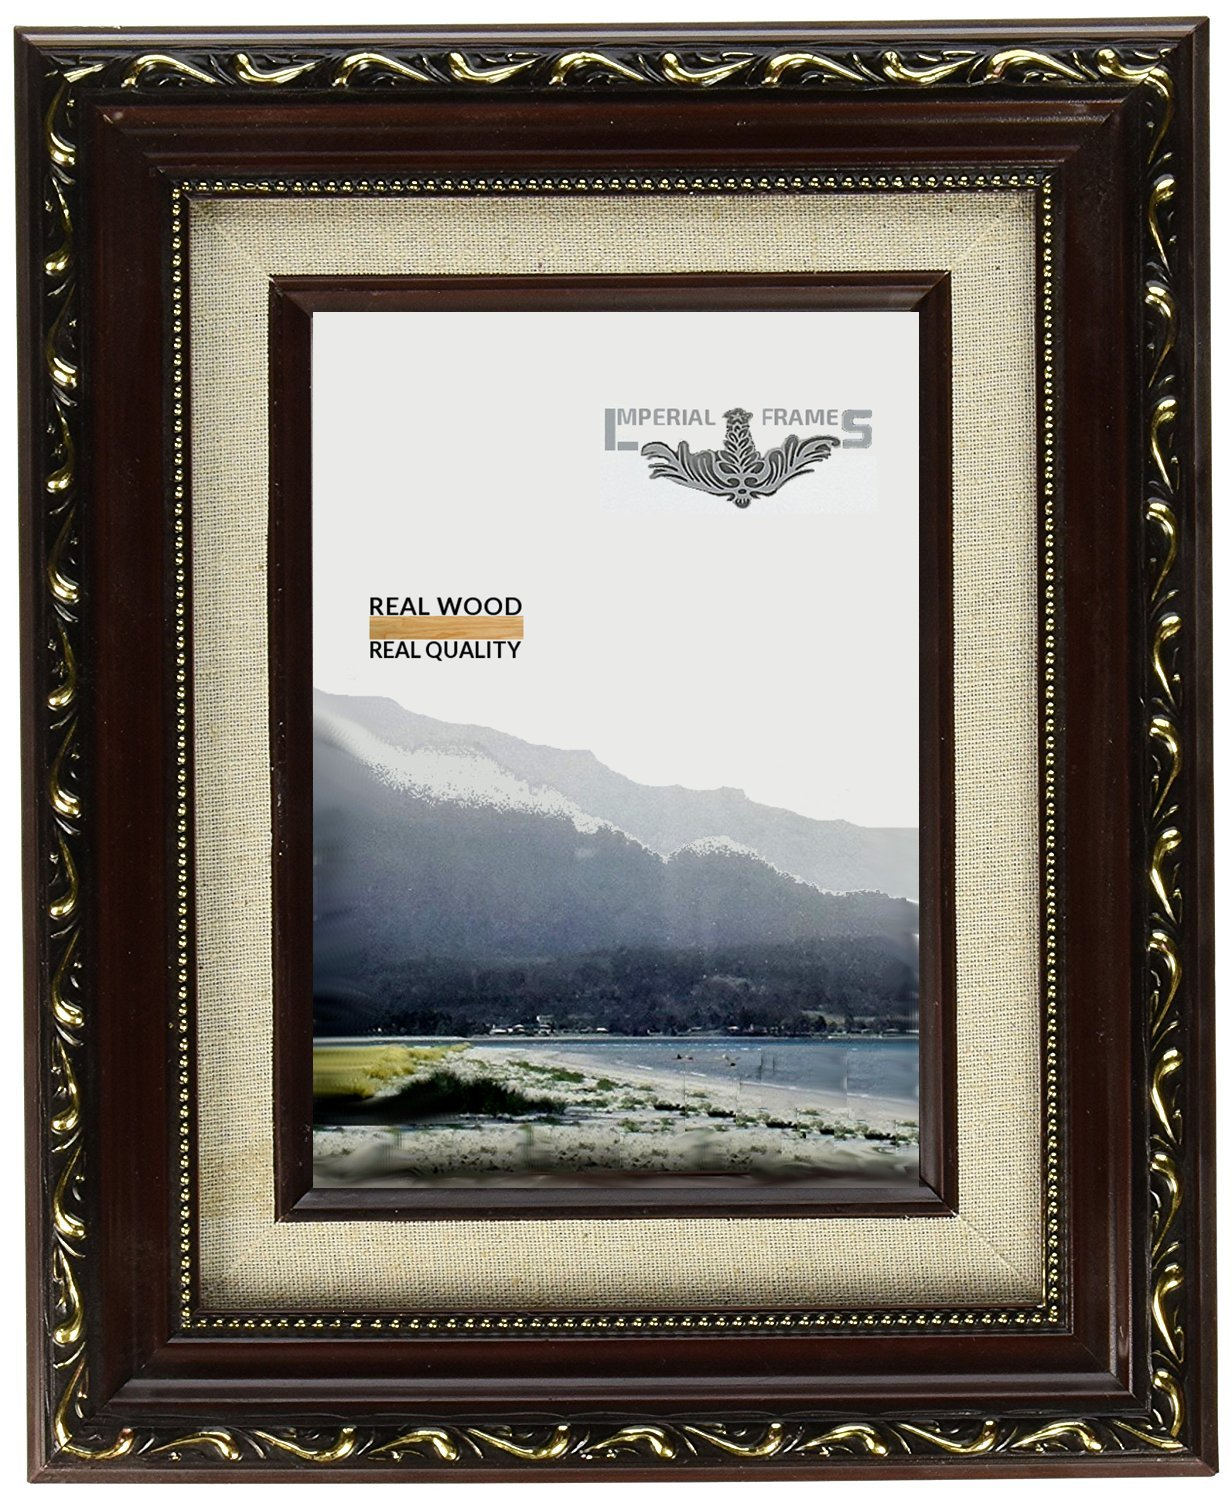 Imperial Frames 614B57 5 by 7-Inch/7 by 5-Inch Picture/Photo Frame, Dark Gold with Floral Design and A Canvas Liner